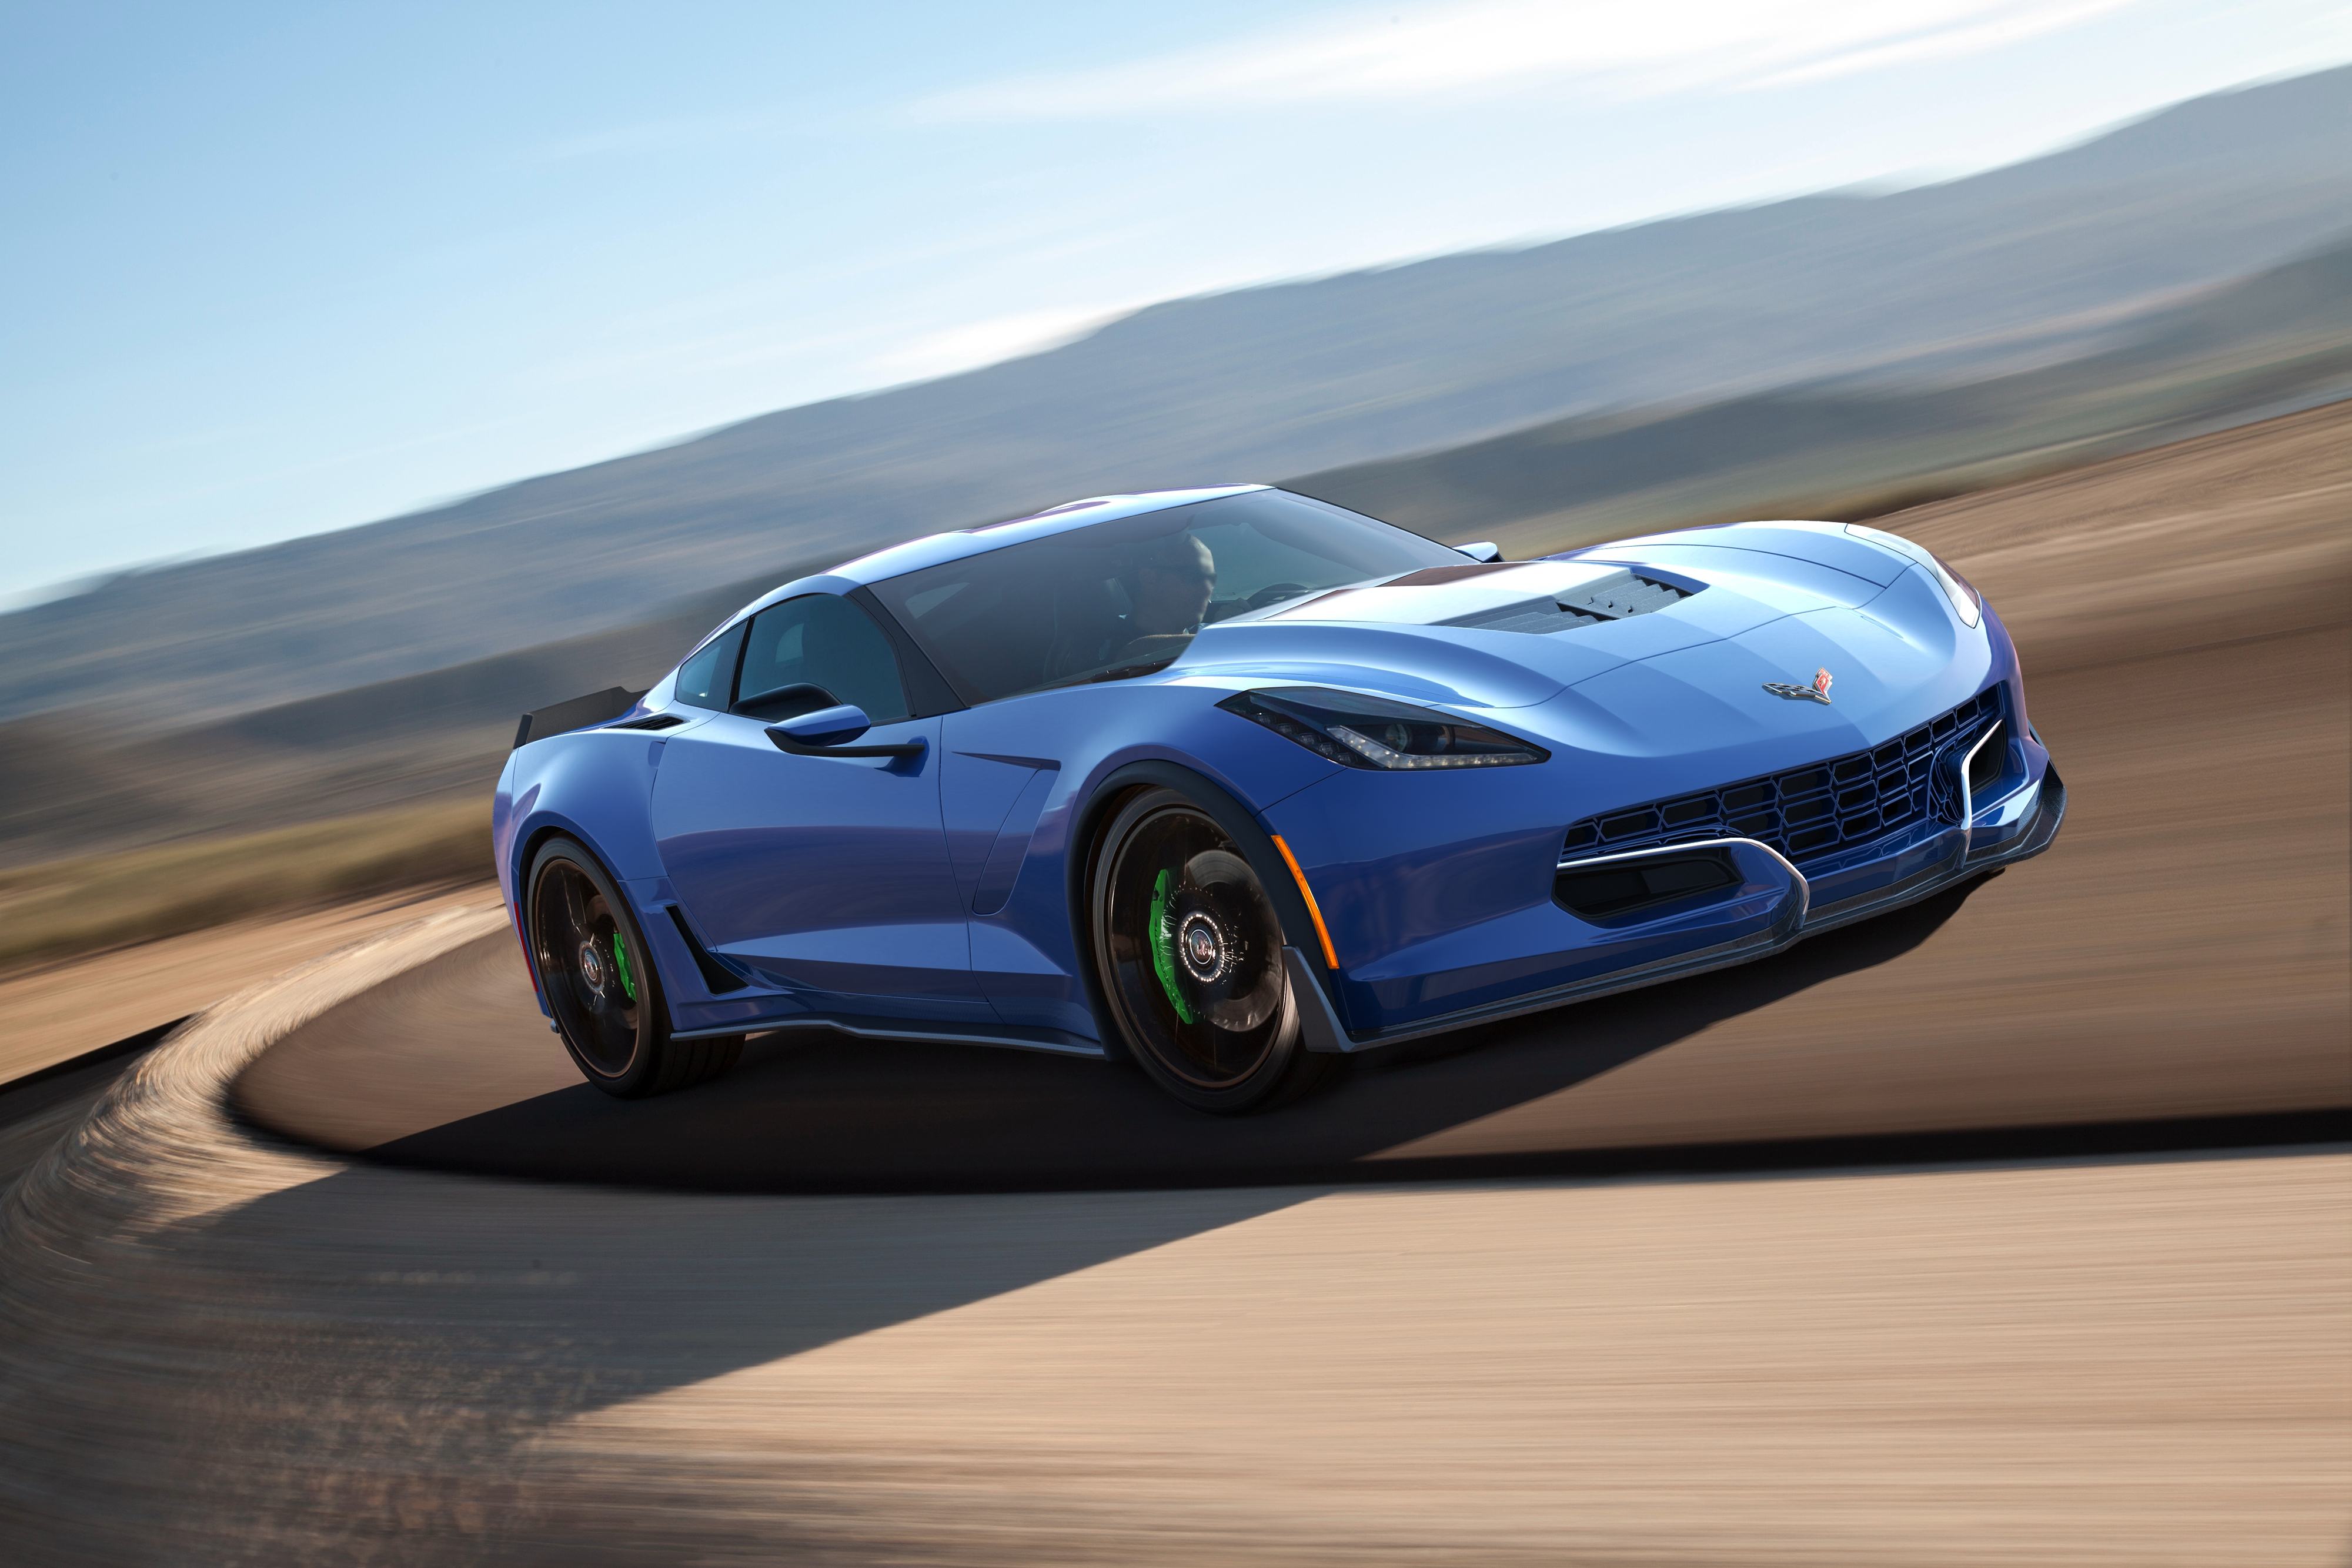 Genovation Says That The Gxe Will Cost 750 000 S About 10 Times Price Of A New C7 Grand Sport Corvette